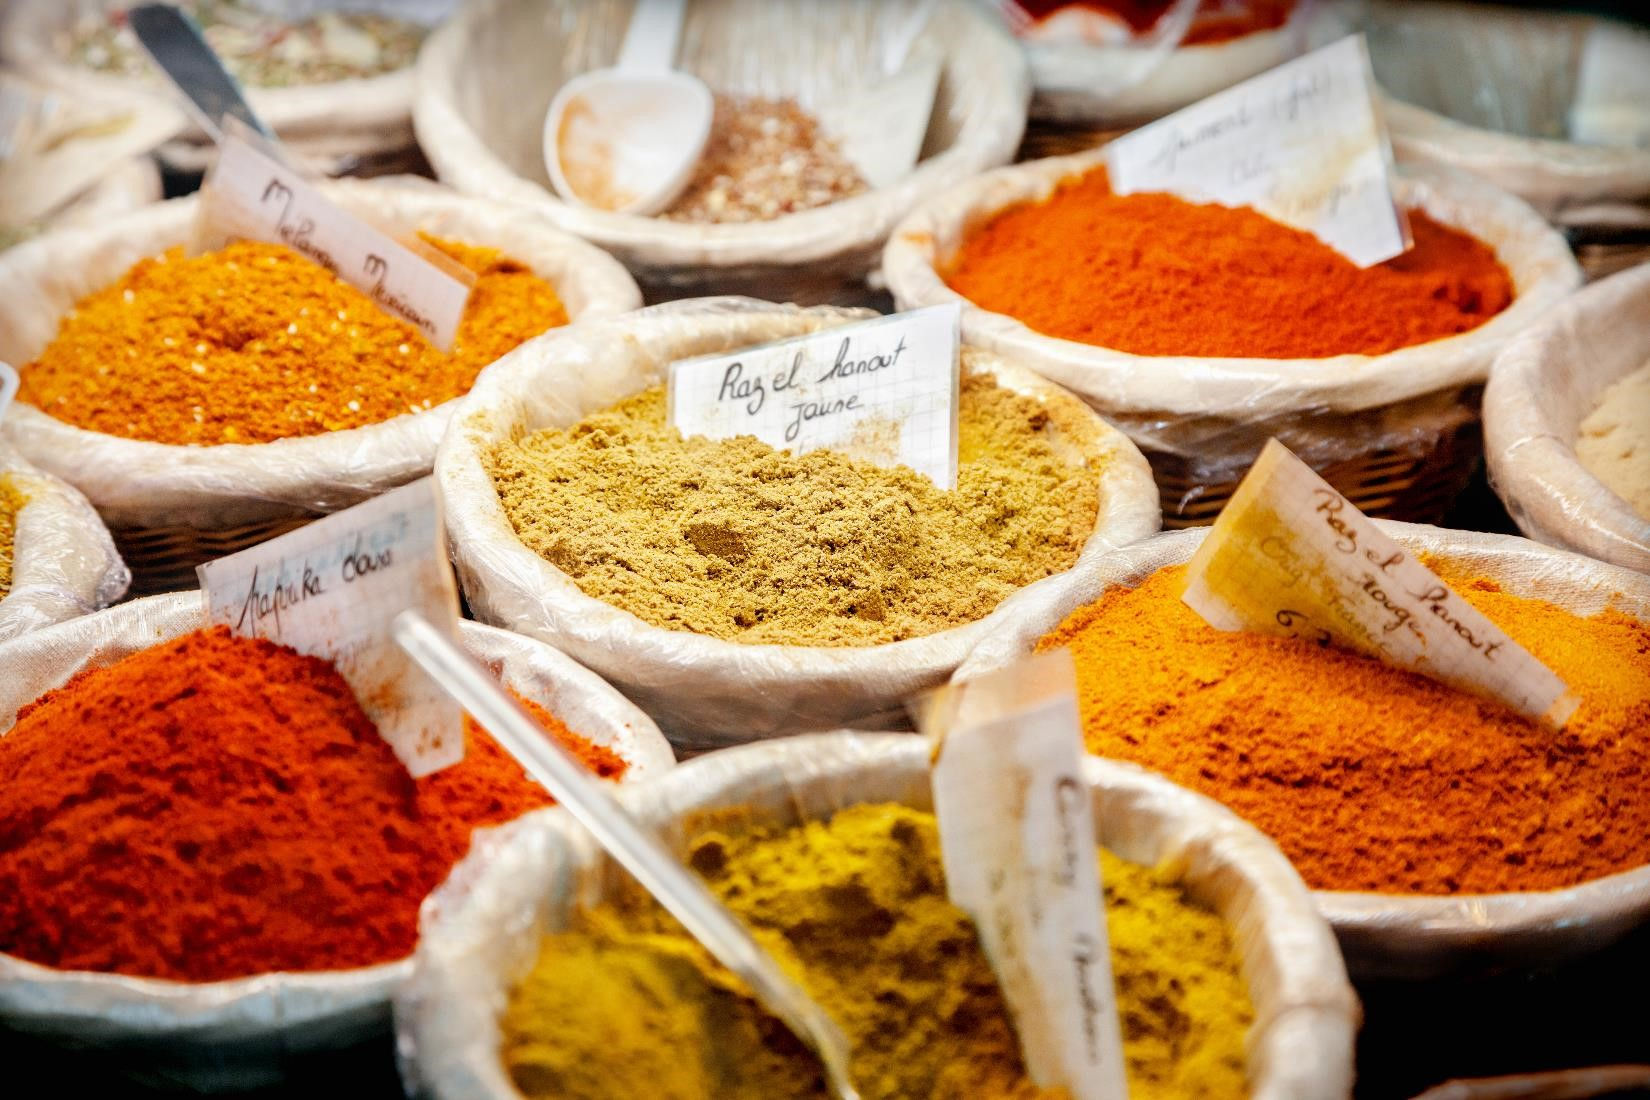 FIND OUT MORE ABOUT RAS EL HANOUT